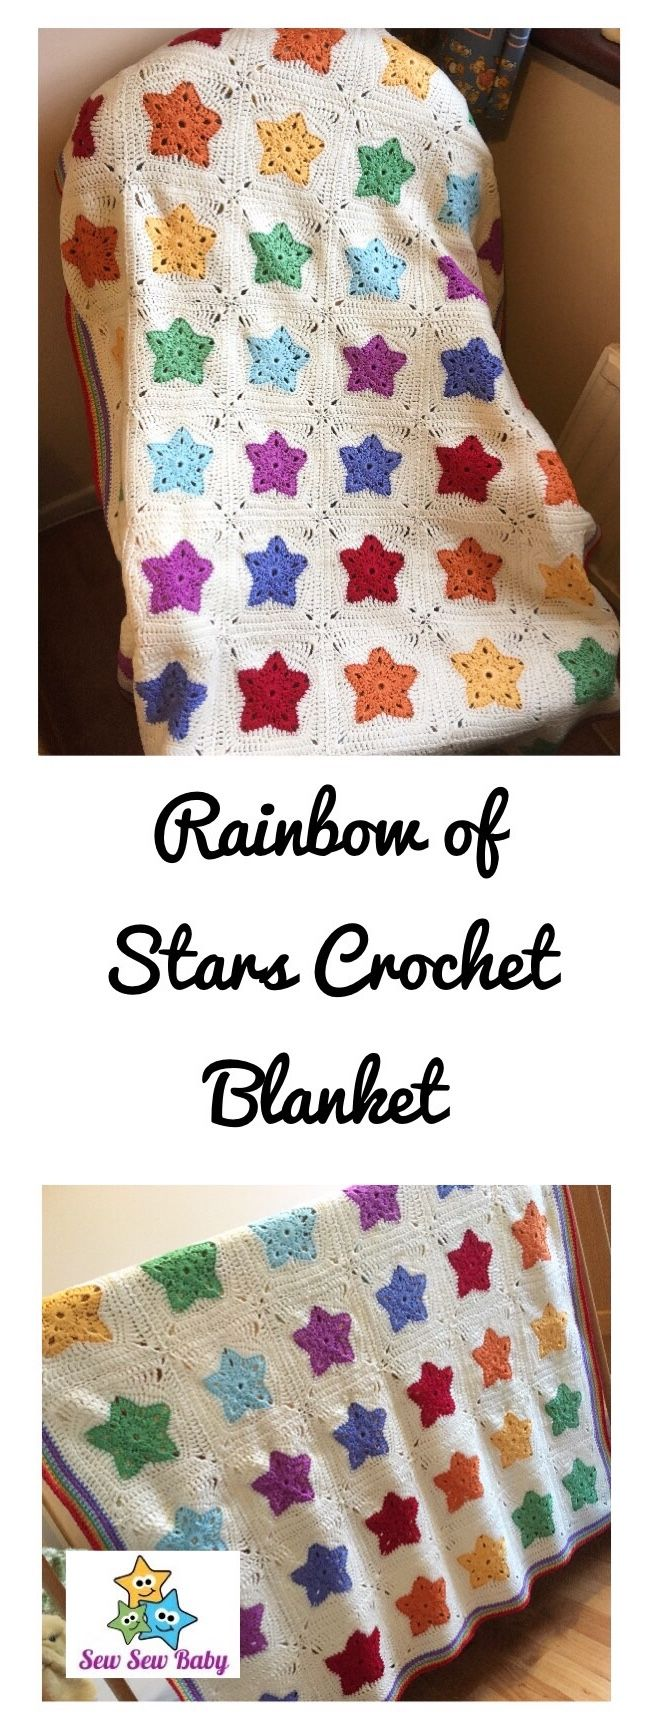 Rainbow of Stars Blanket Crochet Pattern | Manta, Colchas y Ganchillo